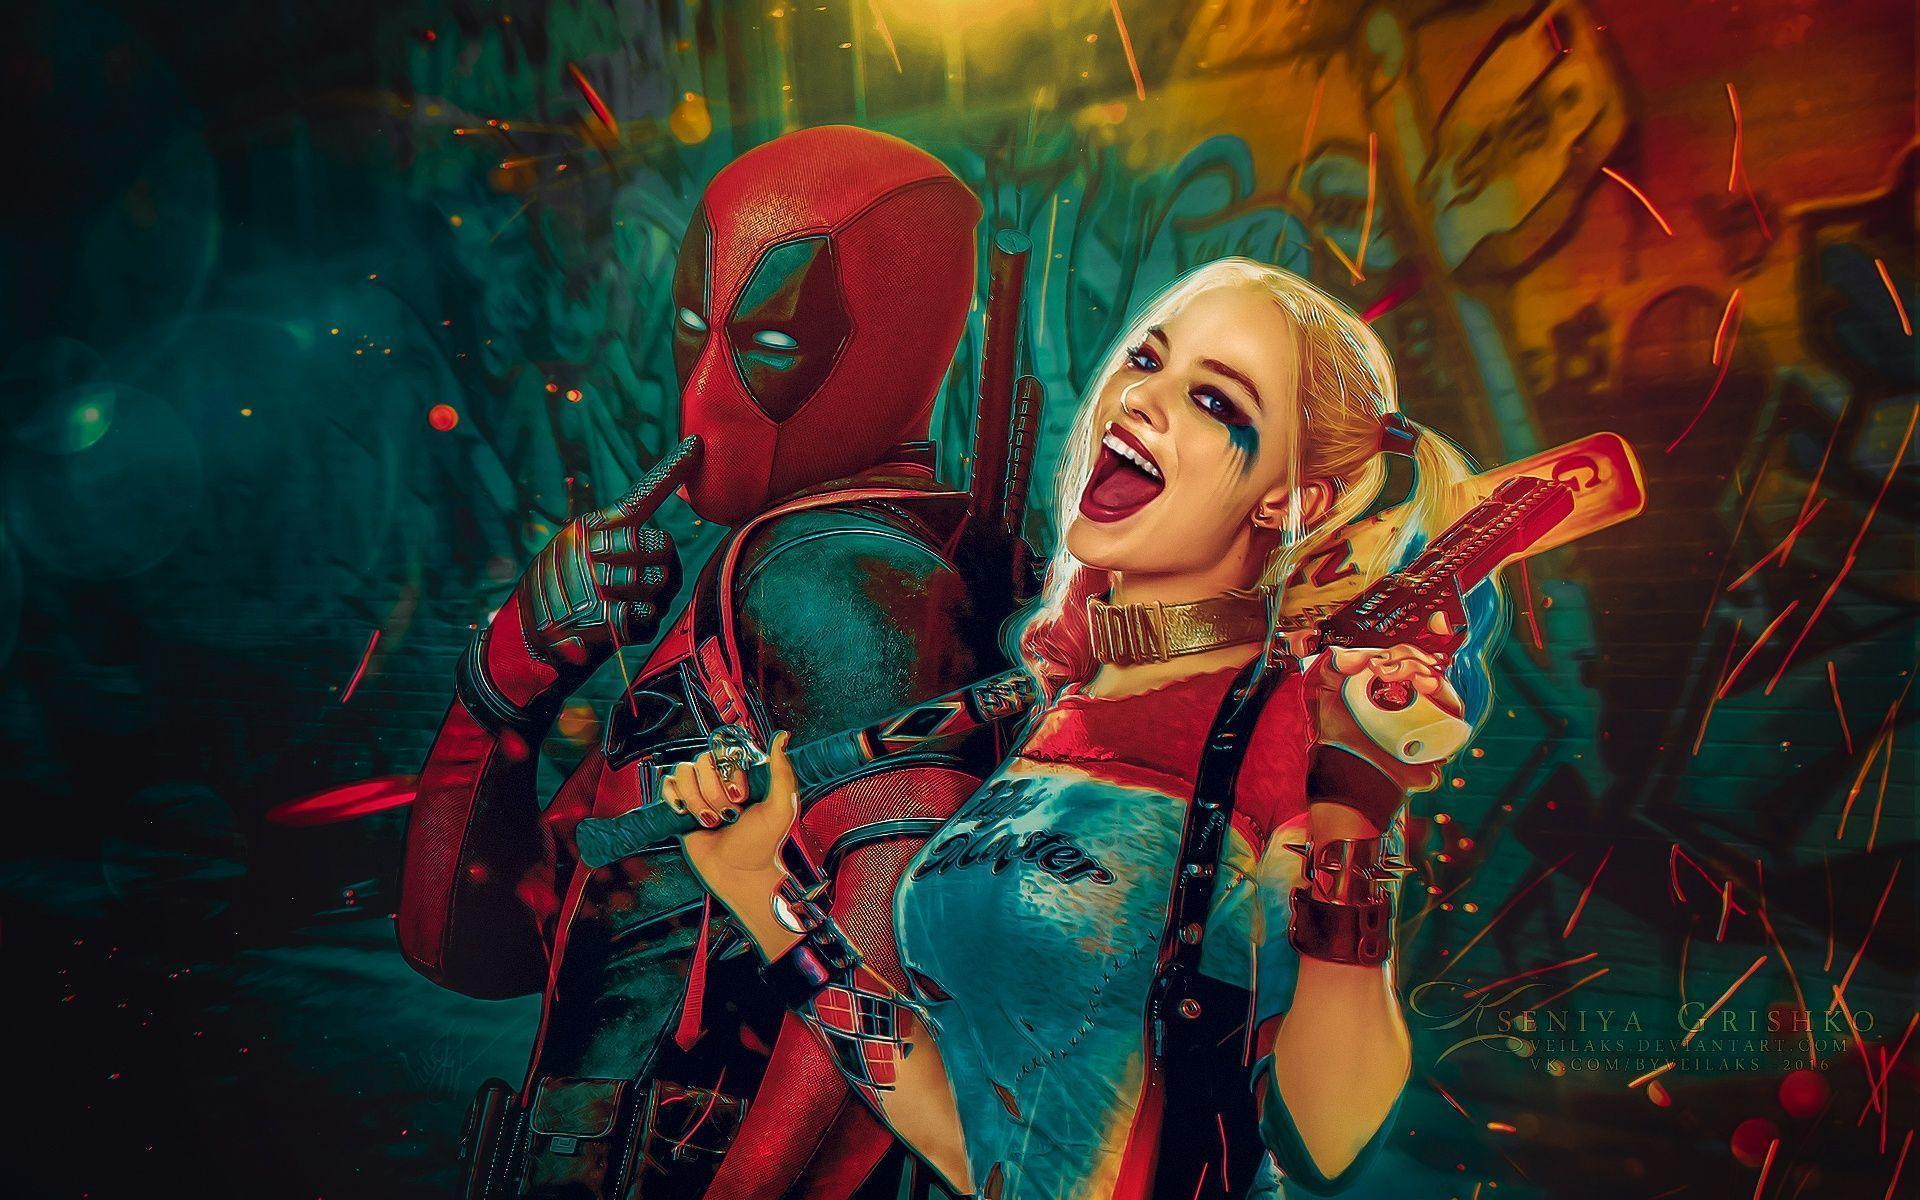 50 Astonishing Suicide Squad Wallpaper HD Download | Harley quin .